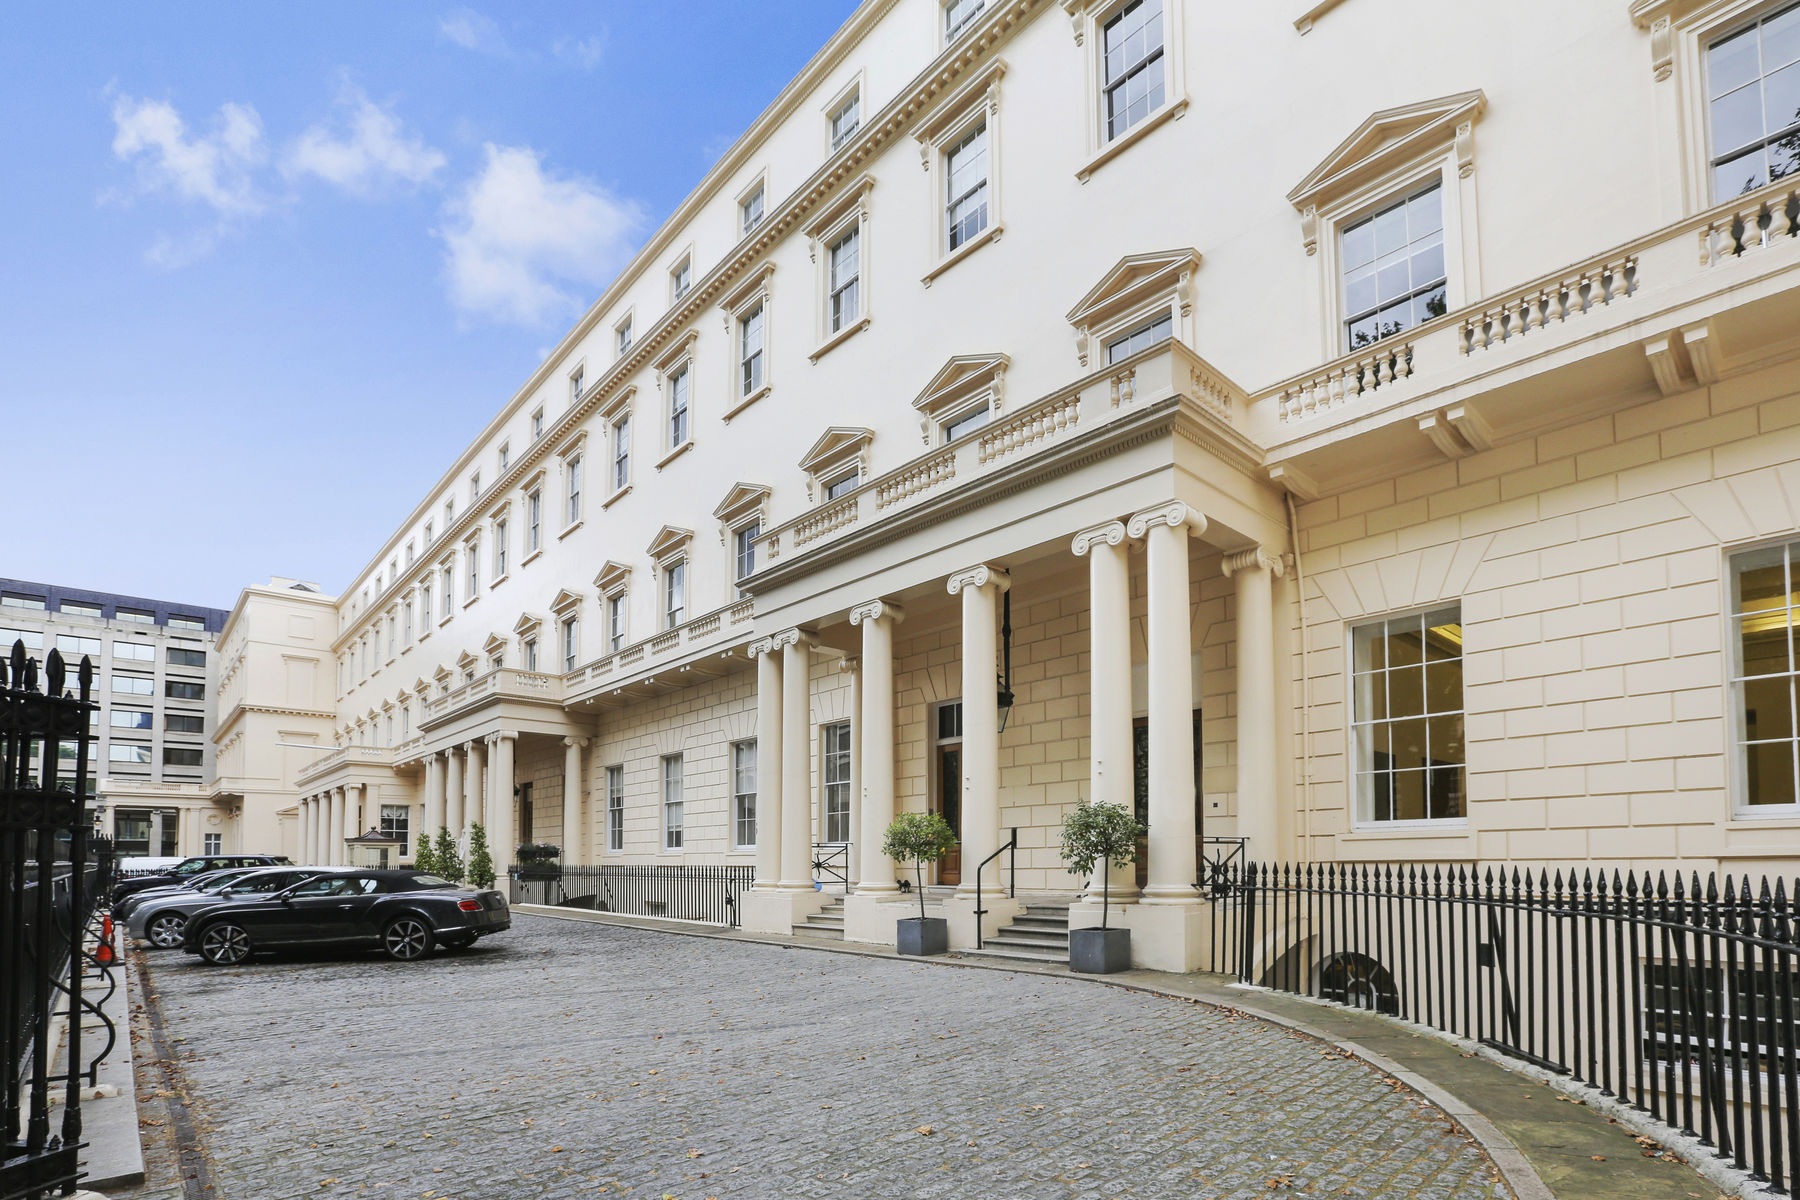 独户住宅 为 销售 在 The Penthouse, Carlton House Terrace London, 英格兰 SW1Y5AH 英国